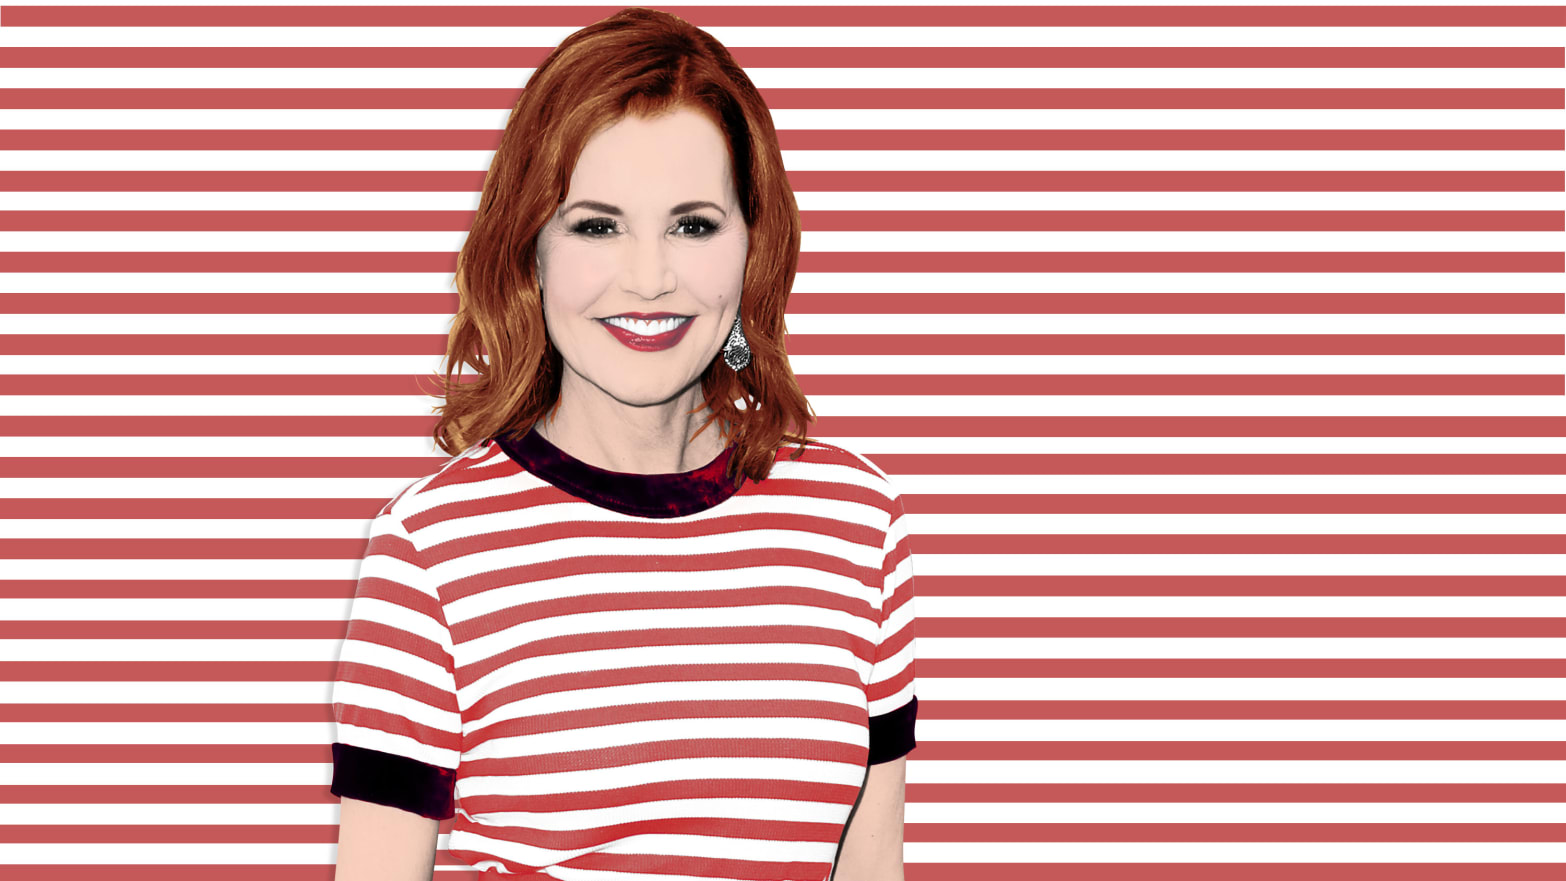 Geena Davis Changed Hollywood. Now Give Her More Parts.